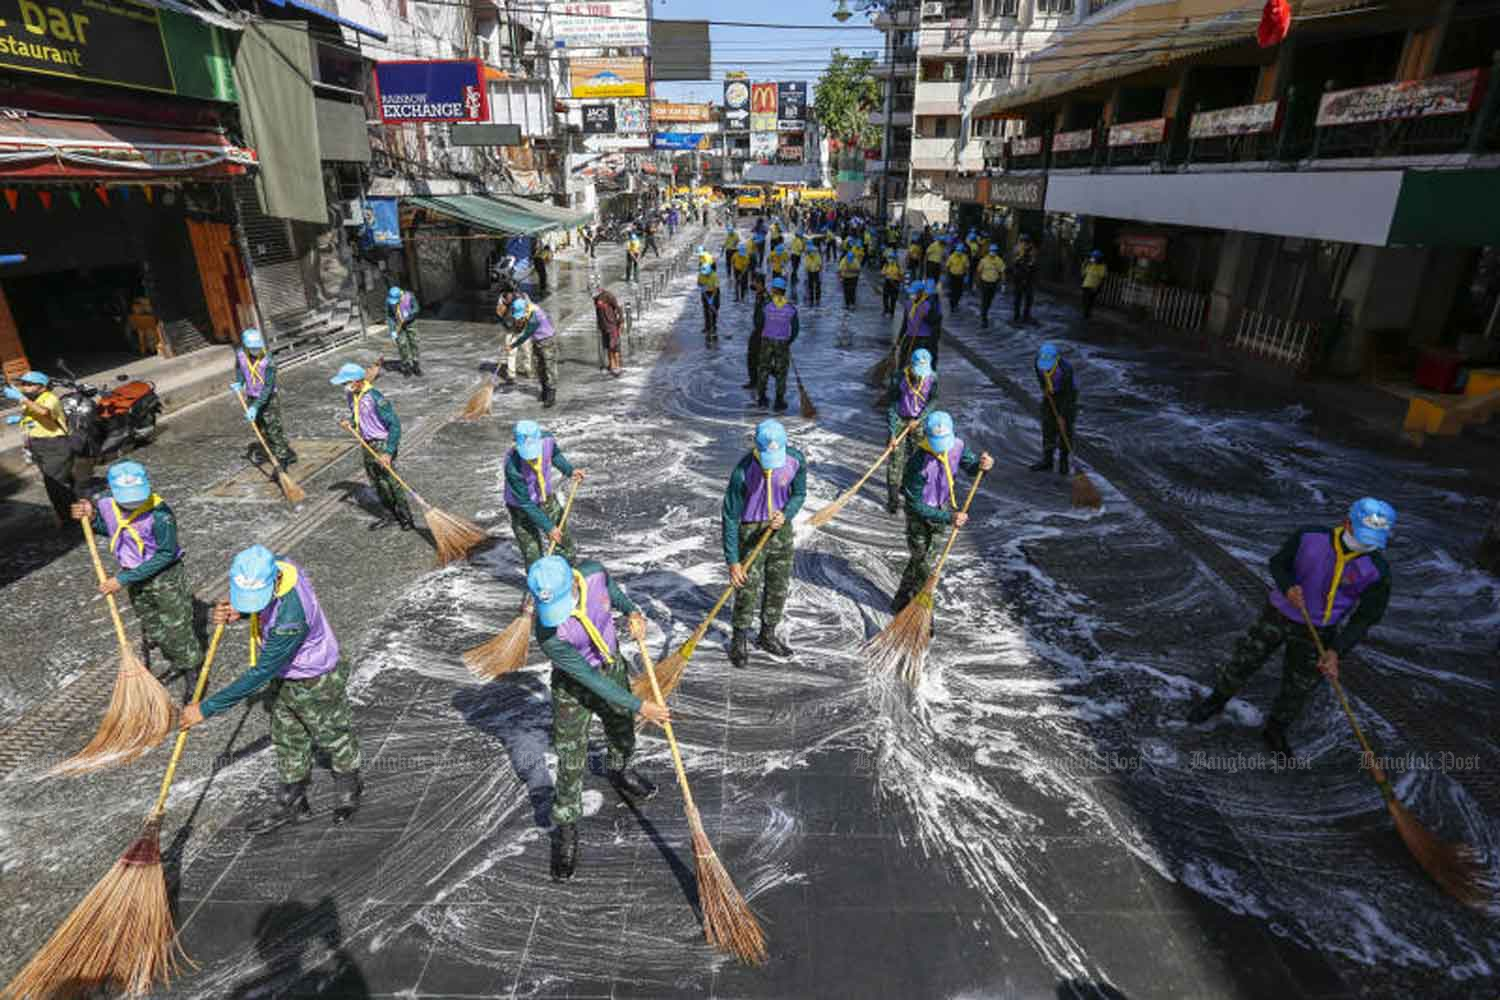 Volunteers engage in a large-scale cleaning effort stretching the length of Khao San Road after the well-known tourist strip was renovated and repaved. The clean-up was carried out in cooperation with the Phra Nakhon district office. (Photo: Pattarapong Chatpattarasill)